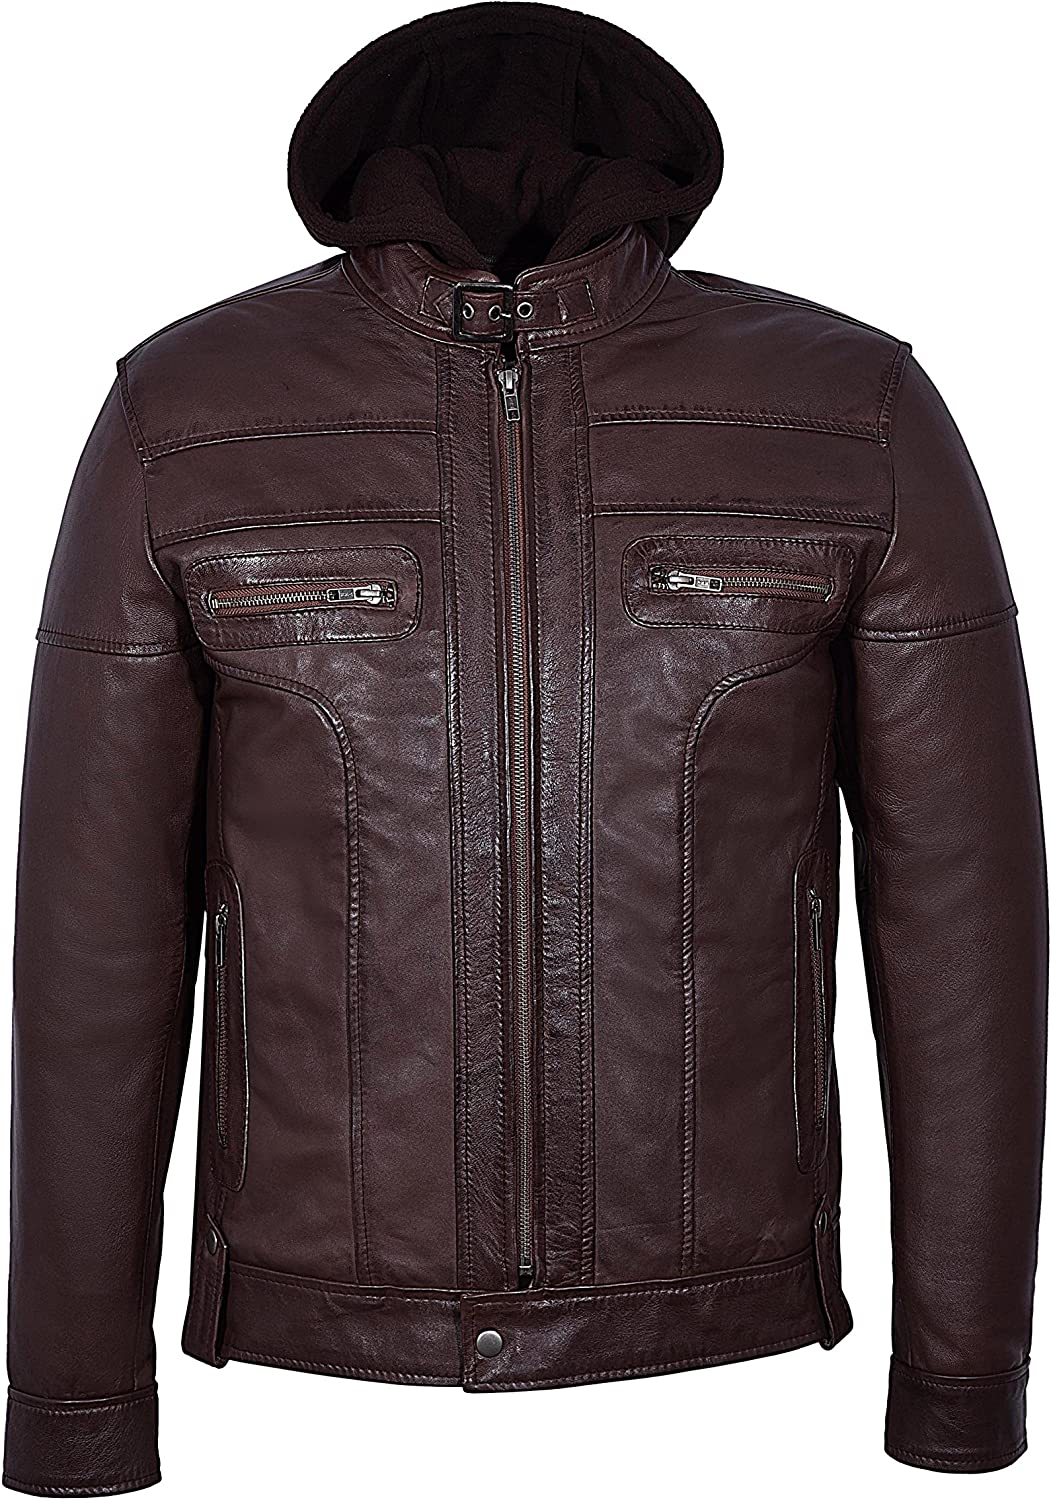 CLARK Mens Brown Hooded Casual Stylish Designer Bikers Real Soft Leather Jacket 8344